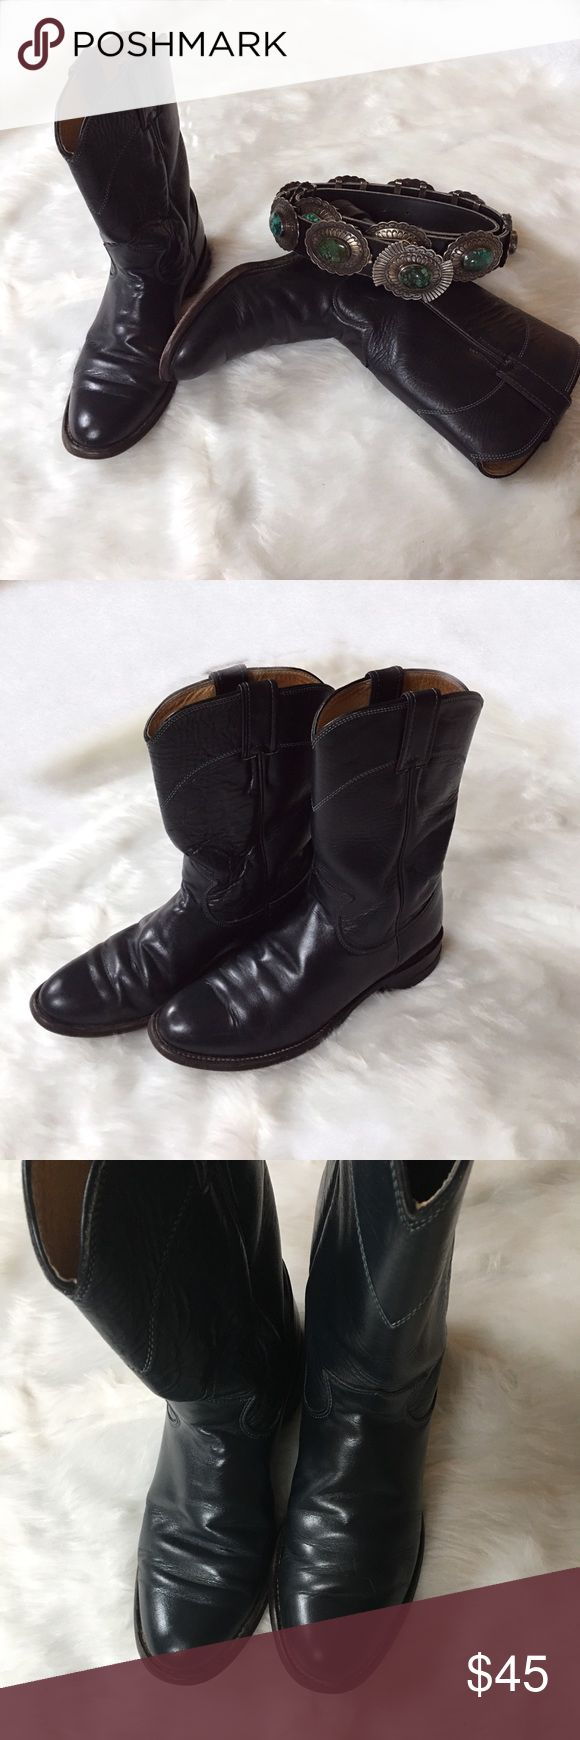 🆕Women's Black Ropers Coachella Season is approaching!!!! Very good condition | Newly conditioned | more creases on one of the boots, but hardly noticeable when worn | Please pay attention to the photos, really a nice pair of boots to add to any wardrobe! Justin Boots Shoes